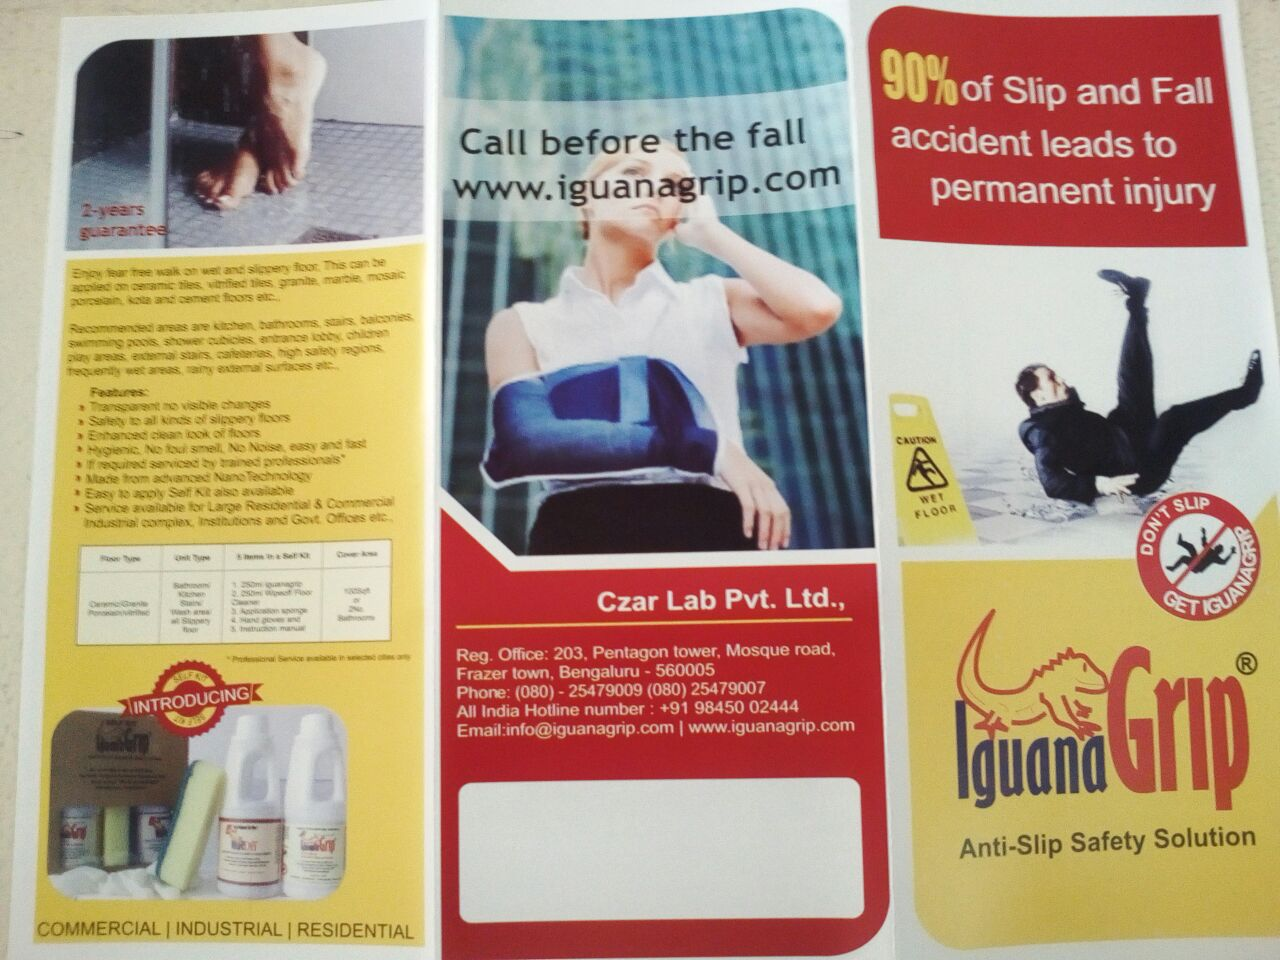 Anti slip safety resistance for floors (IguanaGrip)   free Classified   Free Advertising   free classified ads